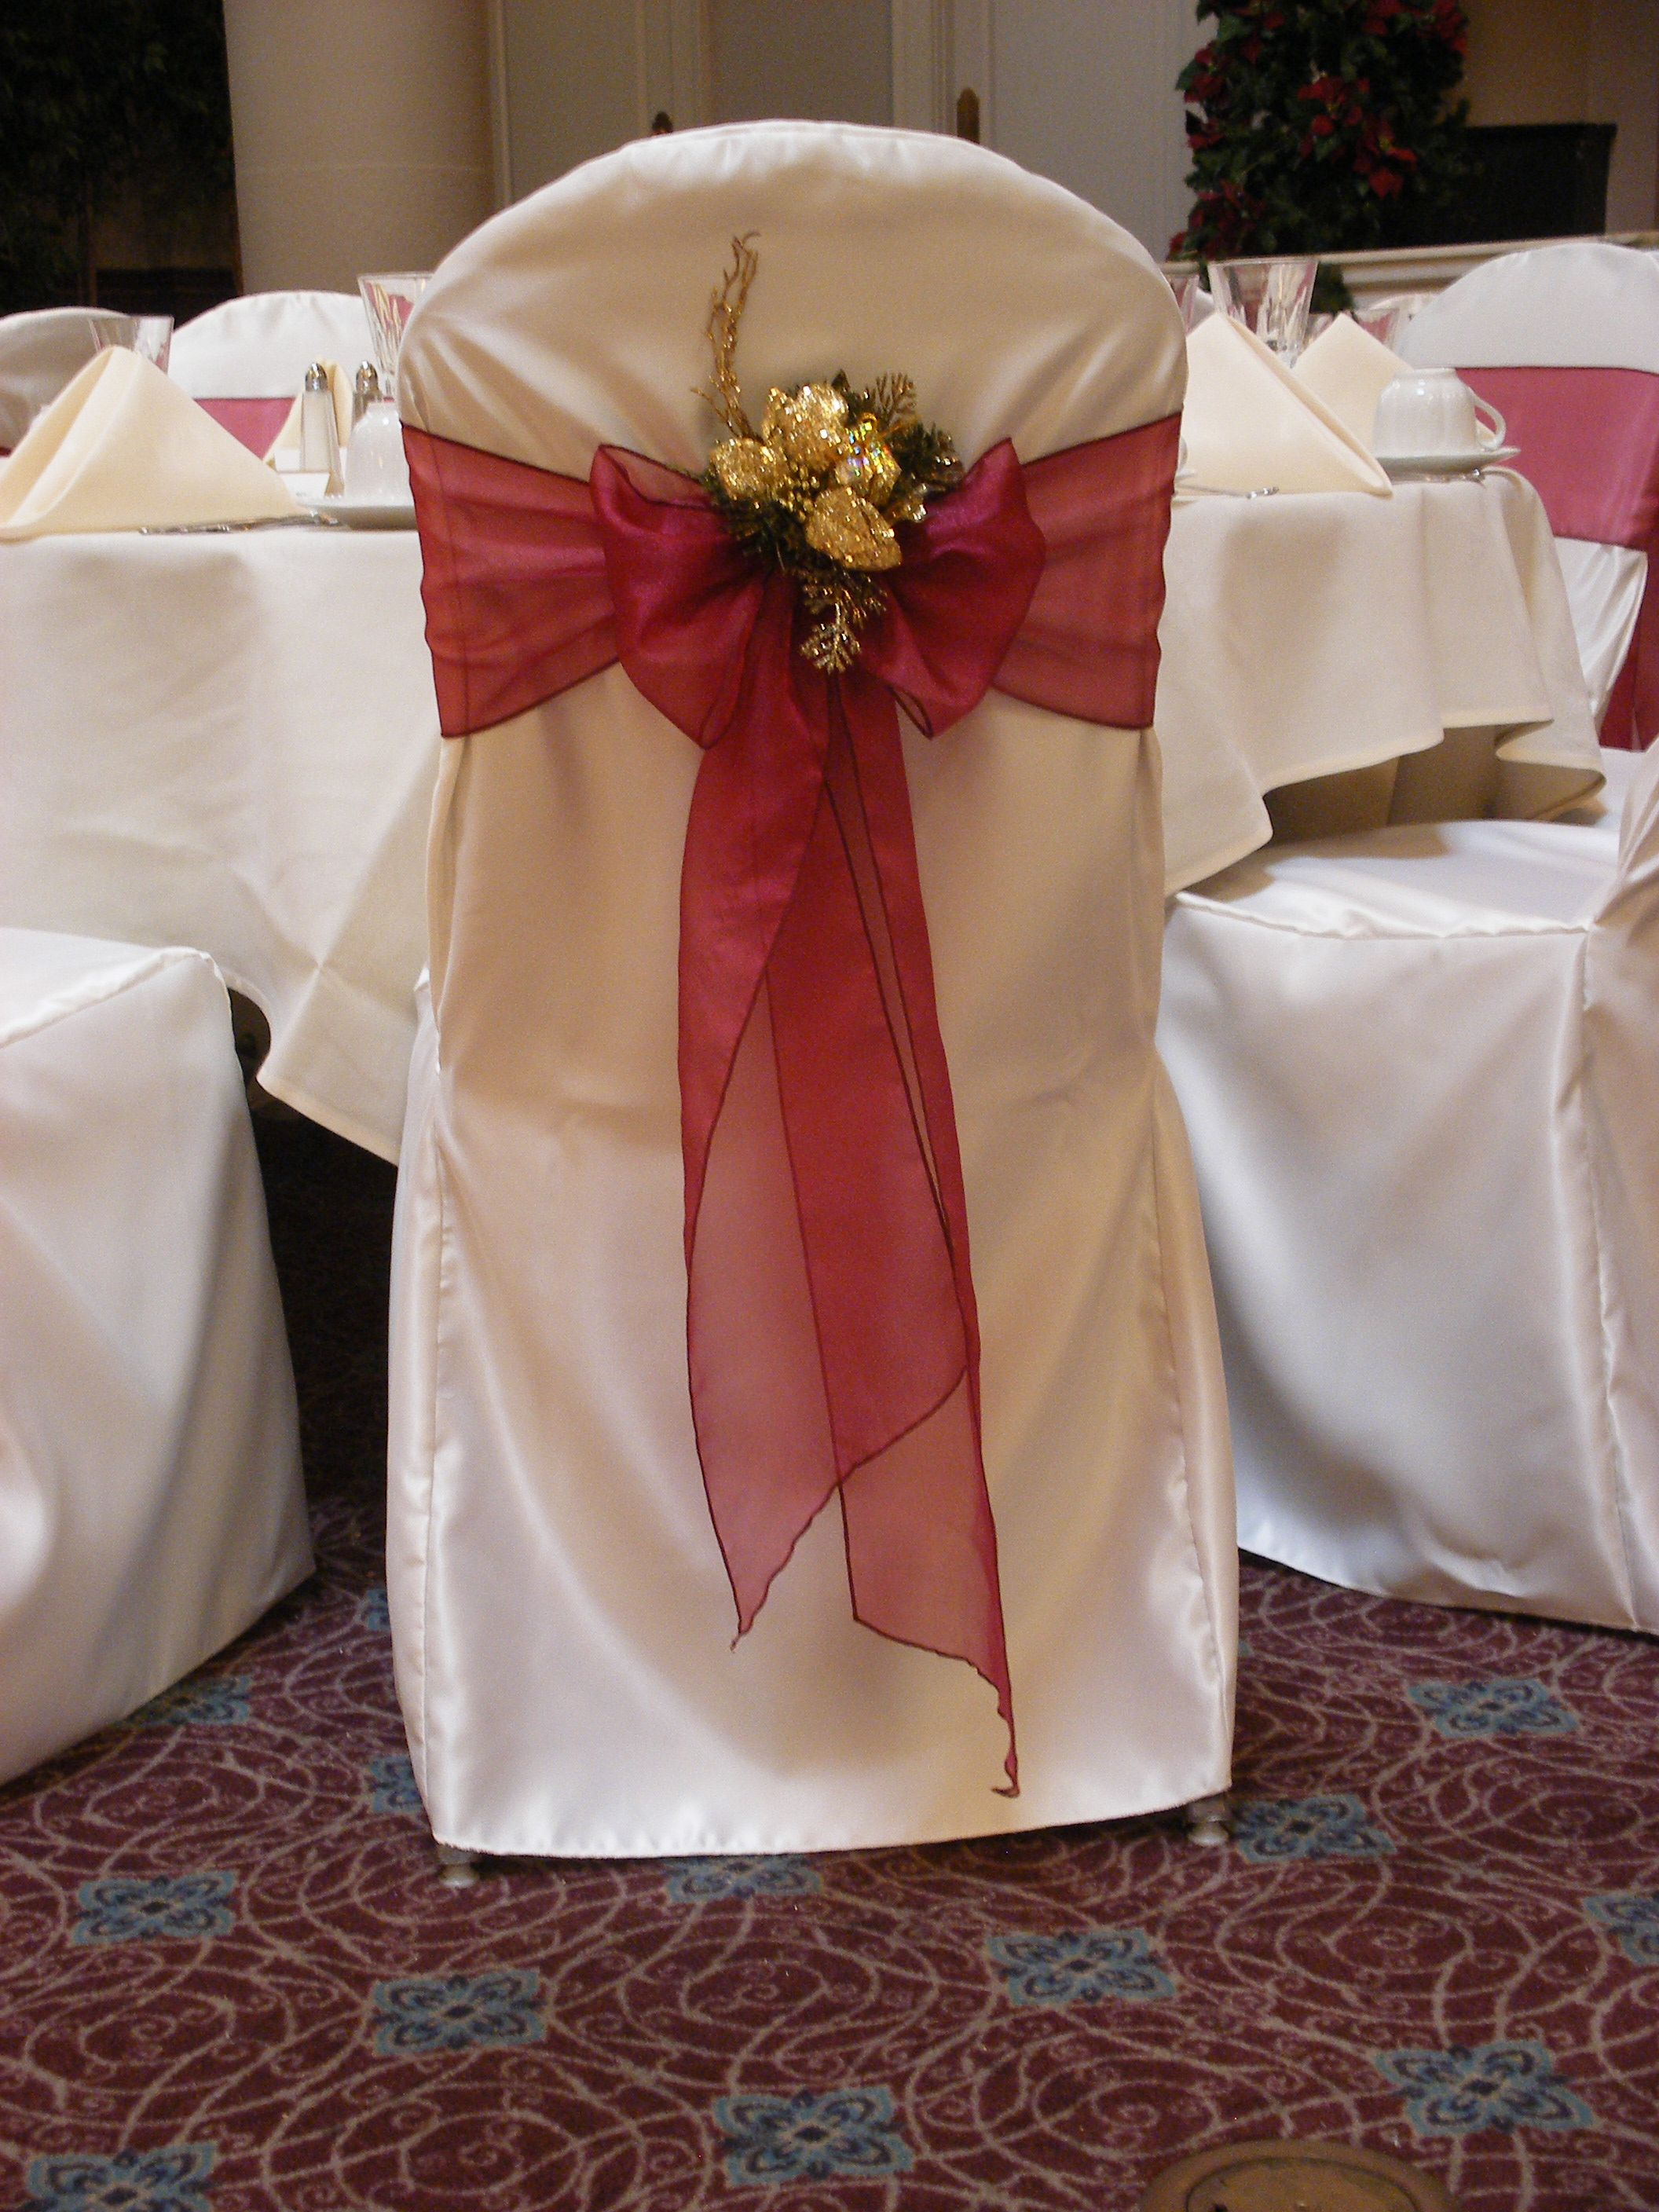 christmas chair covers pinterest chairs for showers pittsburgh services bows white wedding ideas